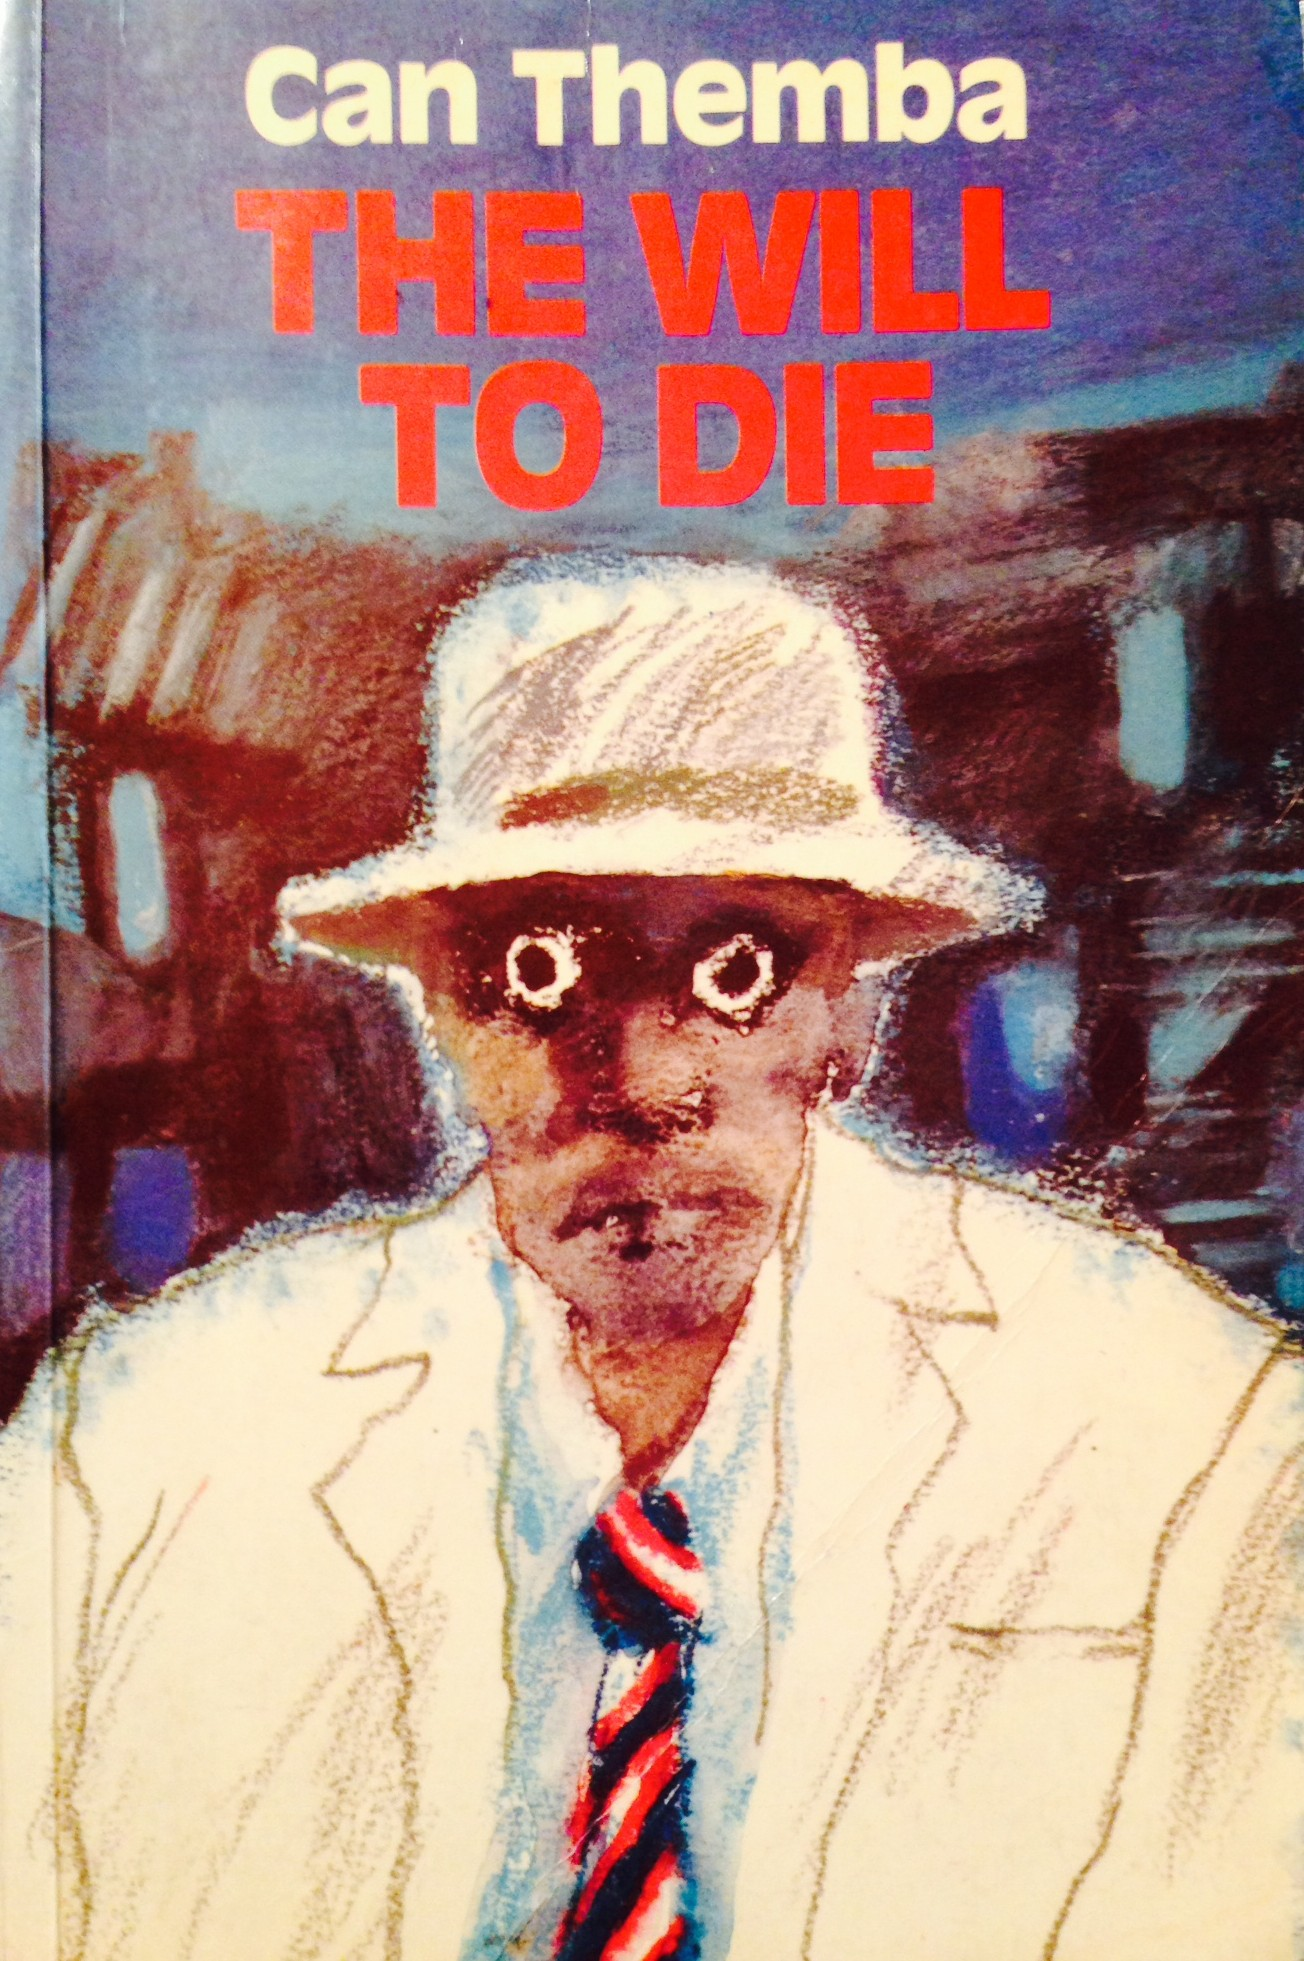 The Will To Die by Can Themba, a prescient collection.